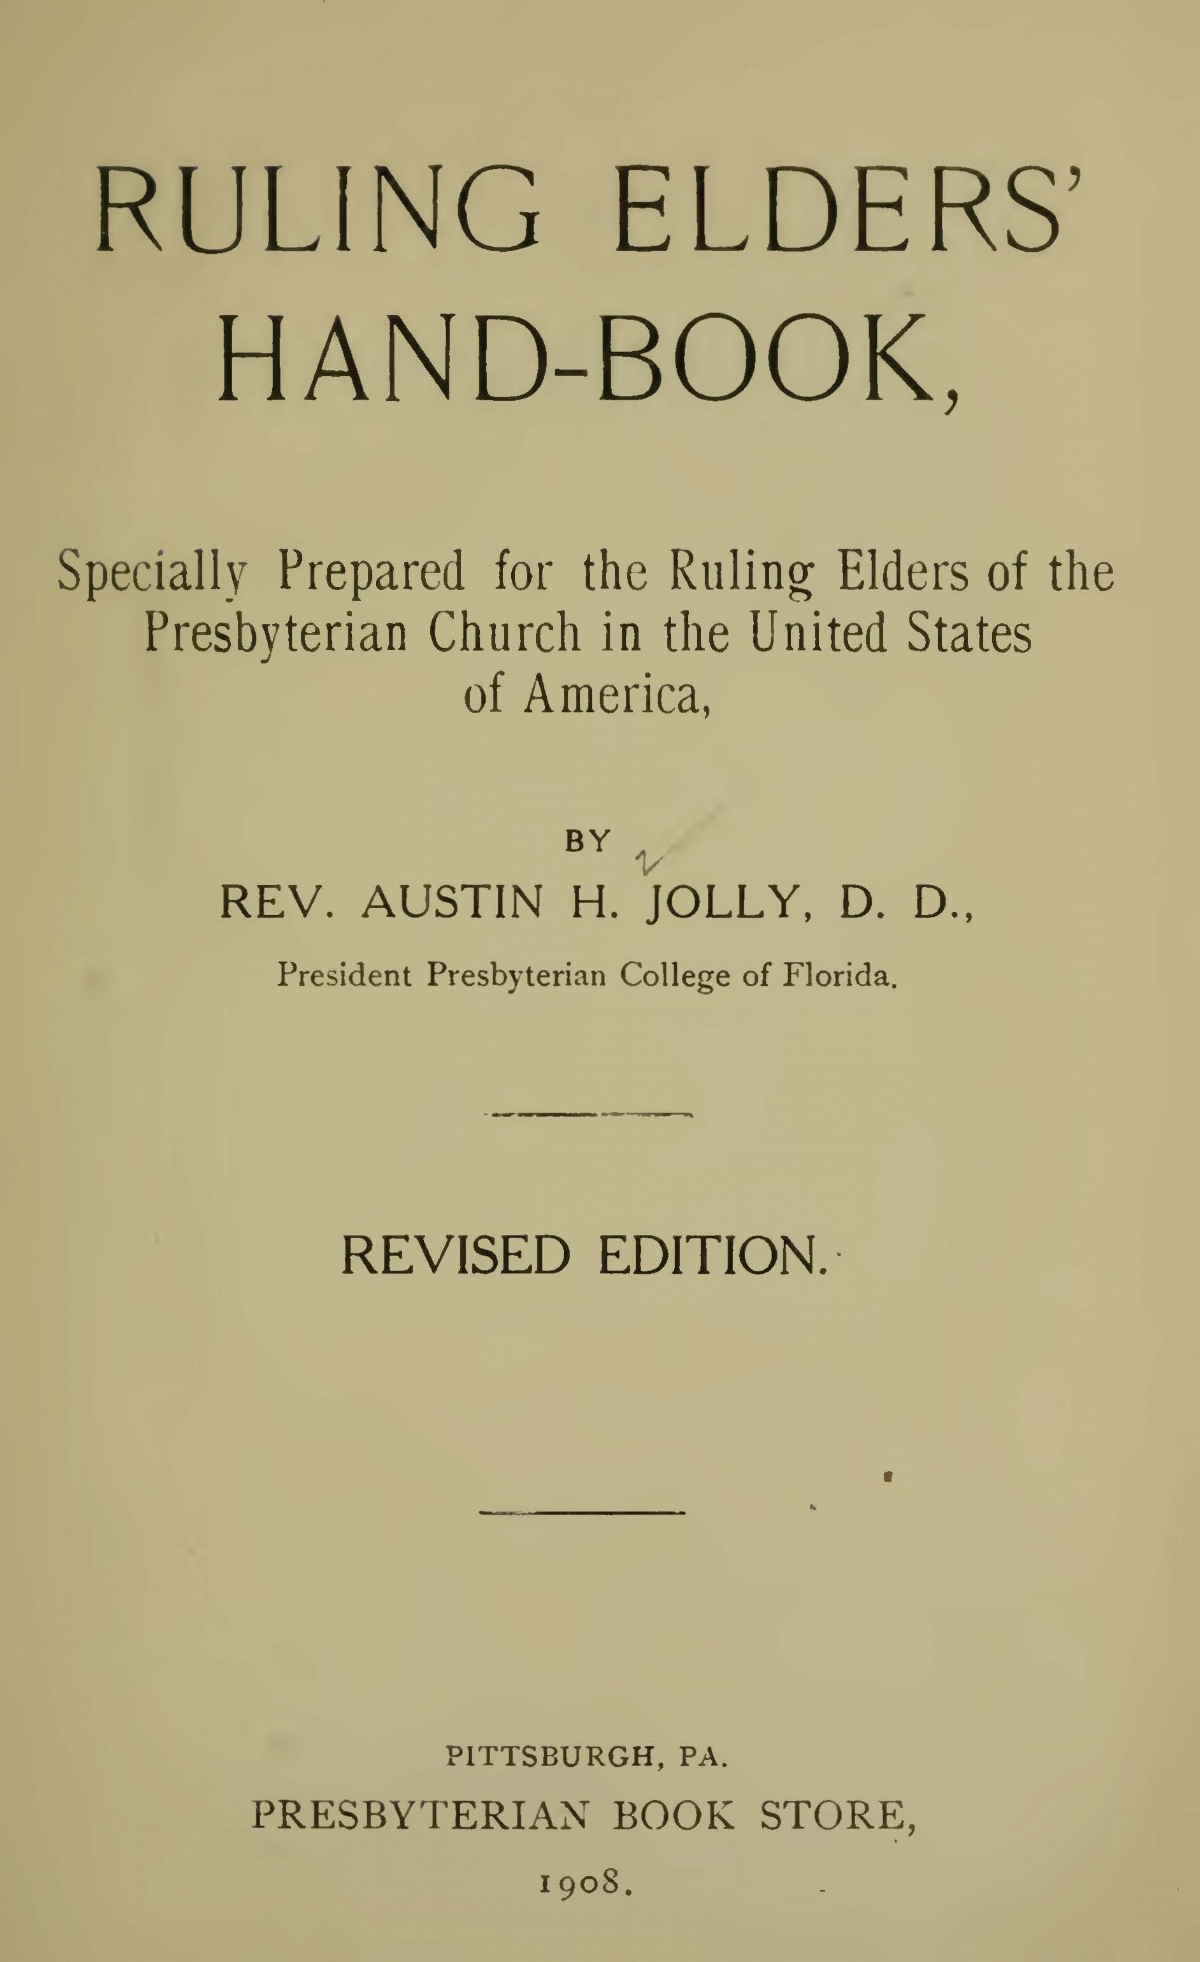 Jolly, Austin Howell, Ruling Elders Hand-Book Title Page.jpg